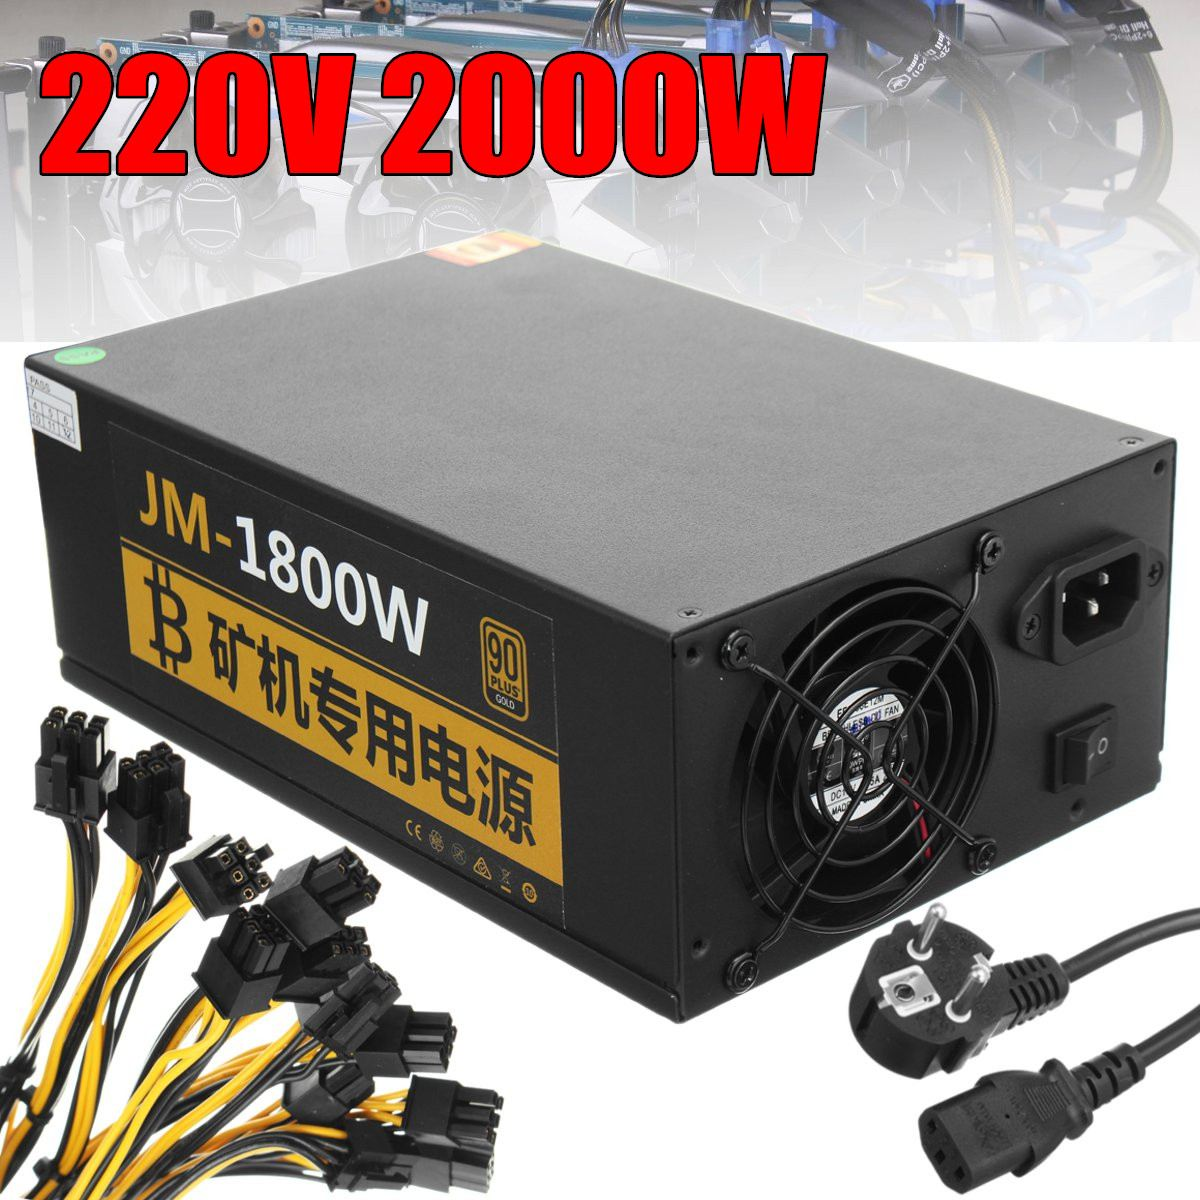 bitcoin new Gold power 220V 2000W PLUS BTC power supply ATX Mining Machine coin miner power все цены